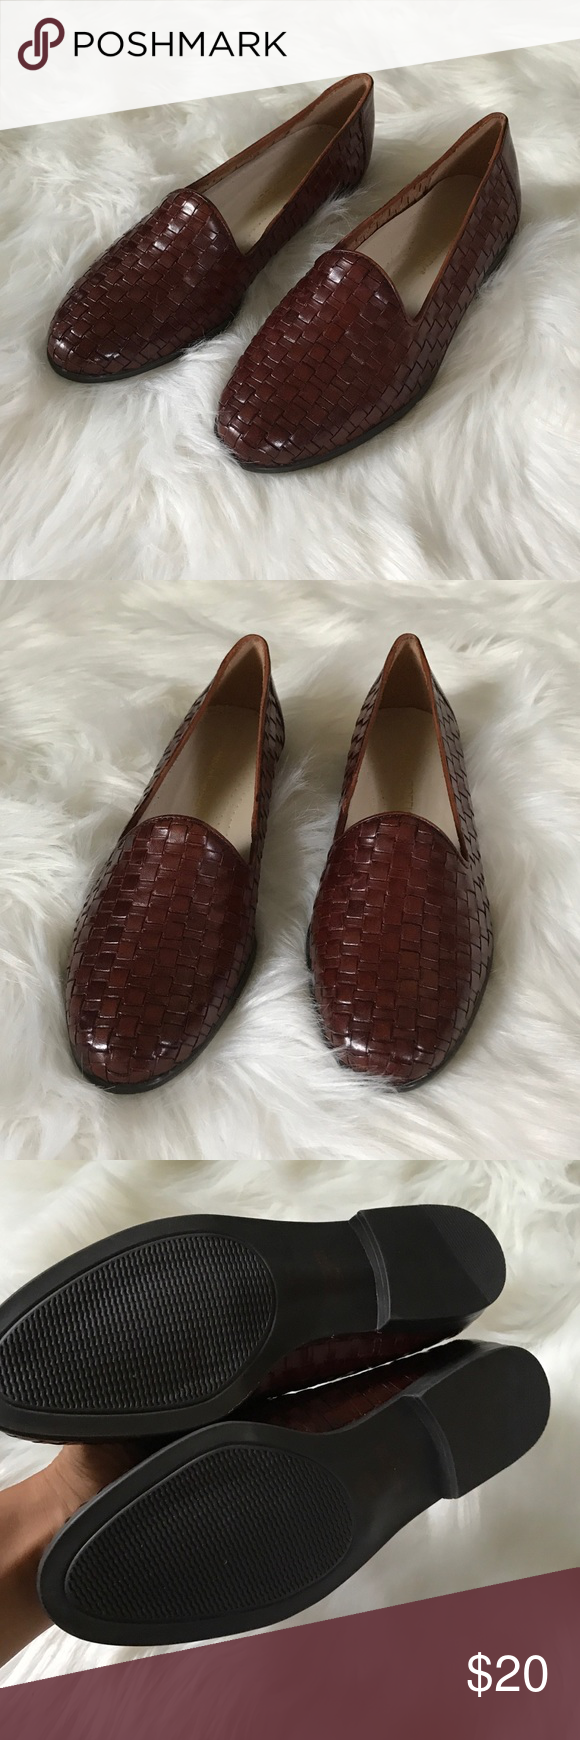 6021863163e8 CABIN CREEK LOAFERS Brand new cabin creek loafers in a size 6 cabin creek  Shoes Flats   Loafers